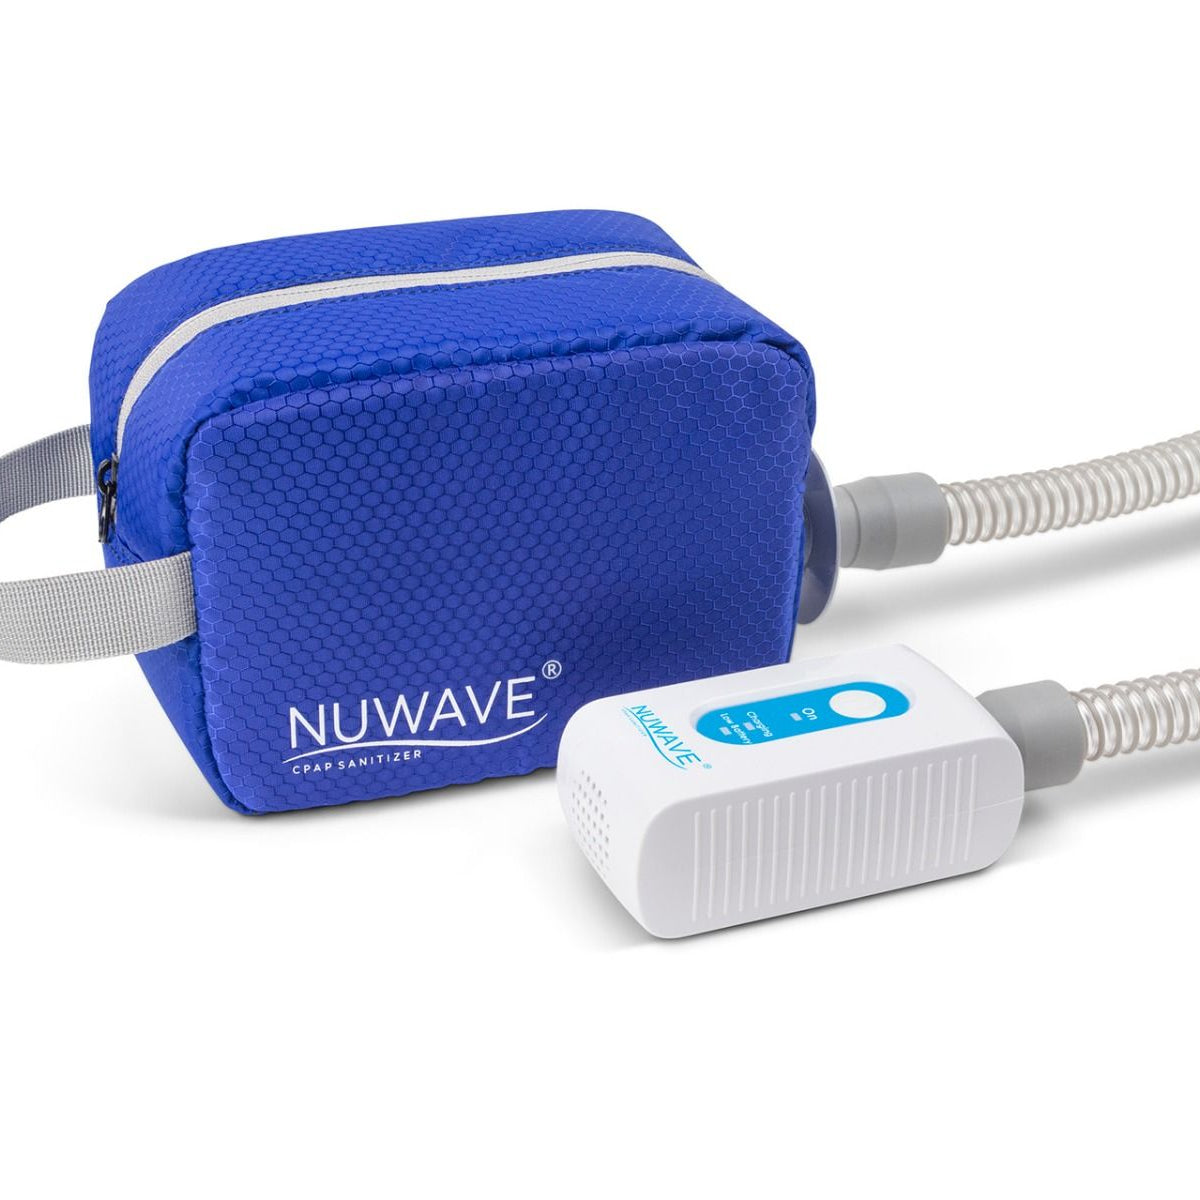 White with blue part CPAP machine cleaner in travel size with travel blue bag by Western Medical Inc.